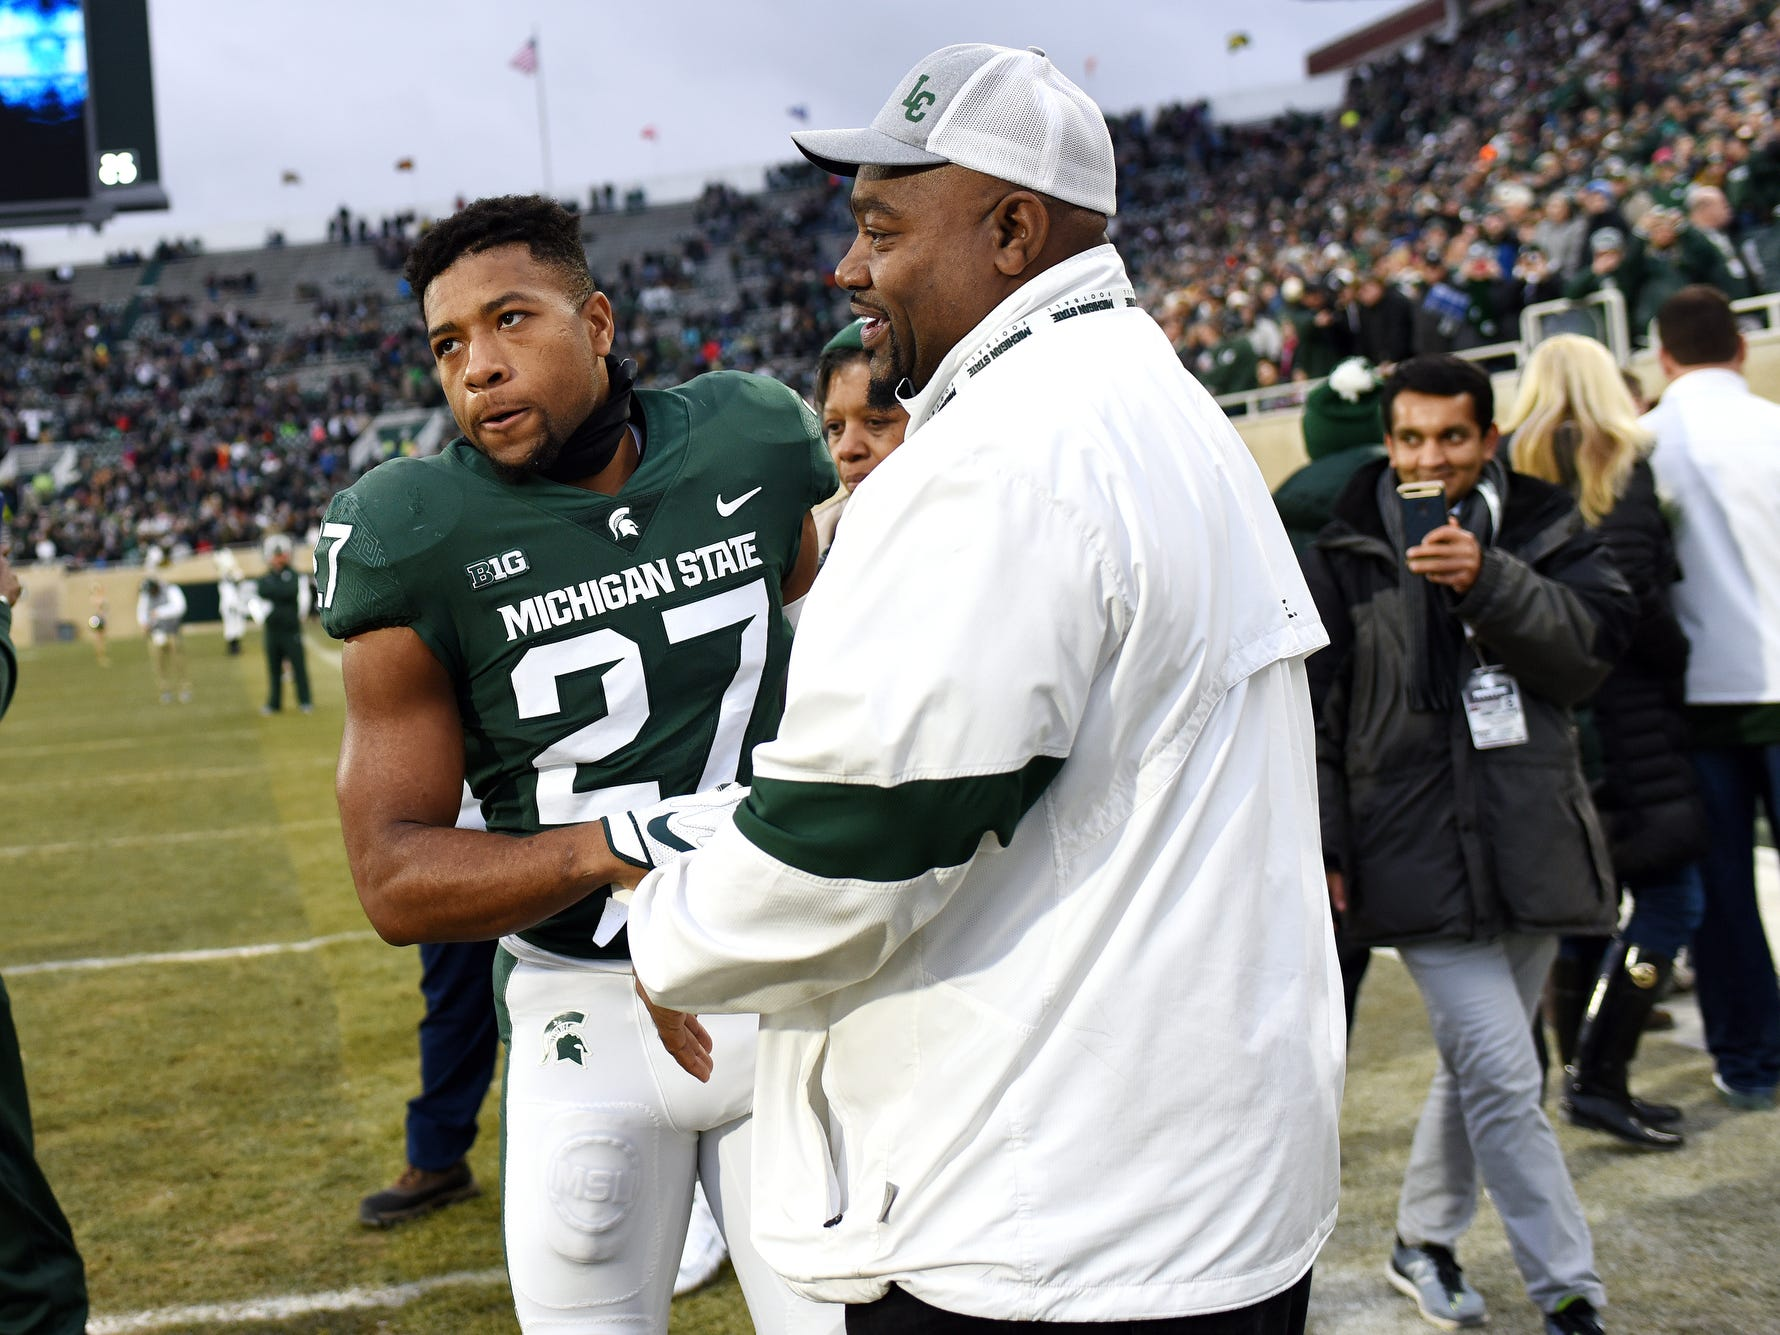 Michigan State senior Khari Willis, left, meets with family after being recognized before the game against Rutgers on Saturday, Nov. 24, 2018, at Spartan Stadium in East Lansing.